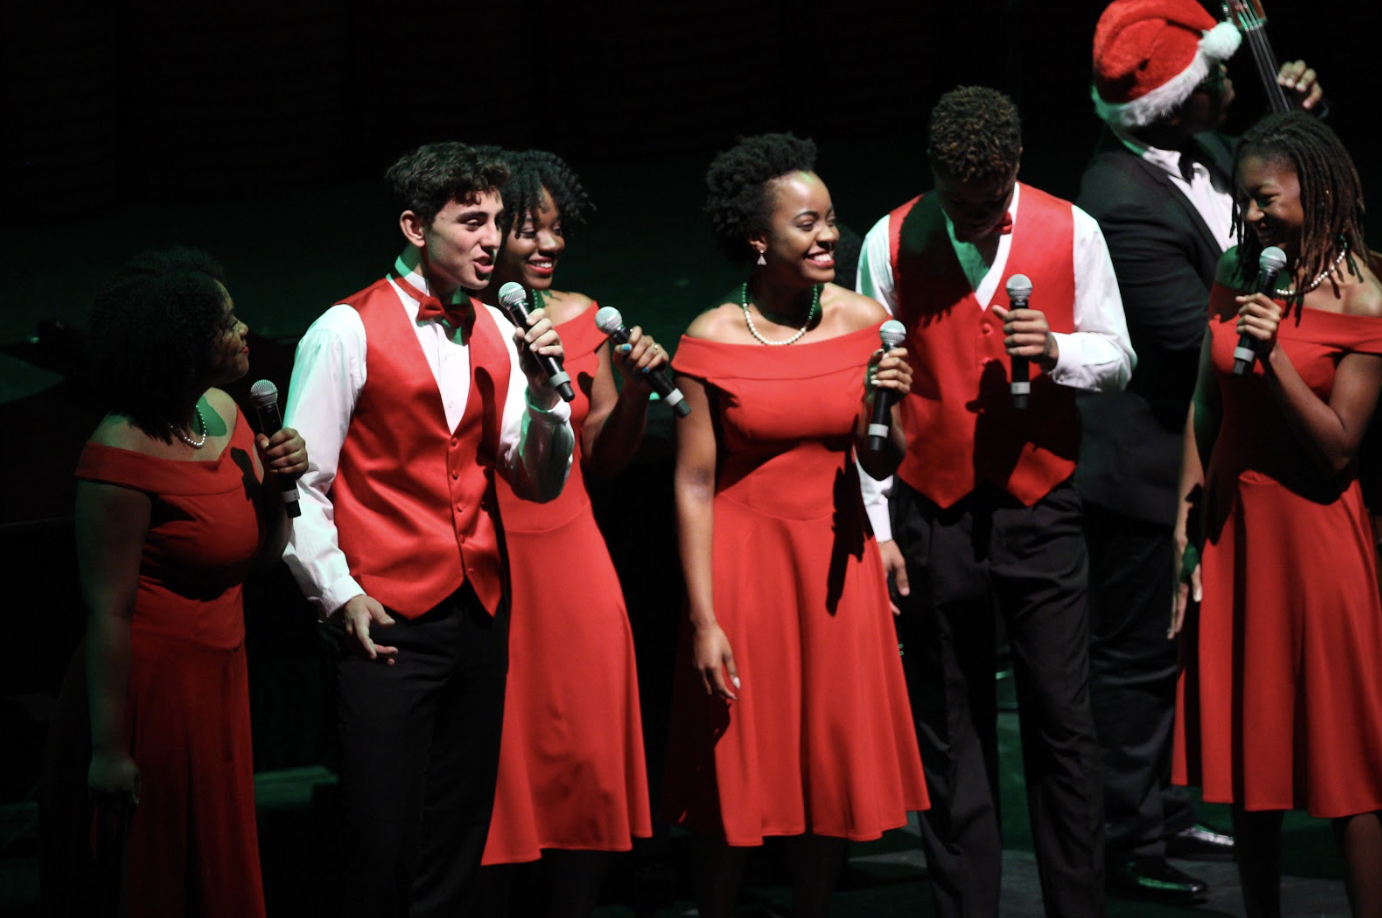 Many of the songs performed throughout the concert were able to create a storyline, with the performers adopting character roles, or expressing the song through choreography.